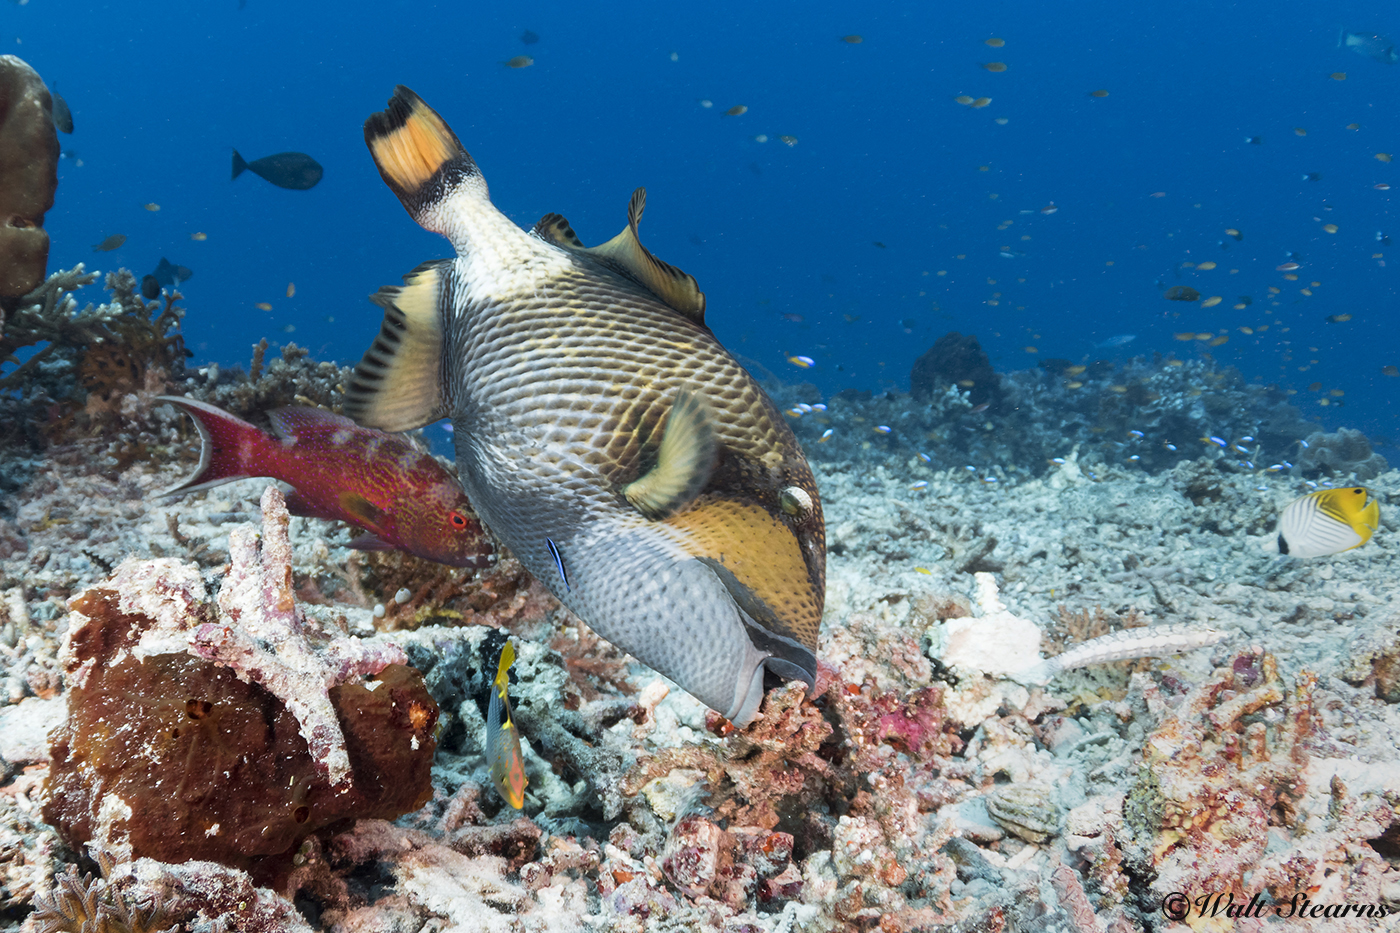 The titan triggerfish can often be seen turning over rocks and bits of coral rubble to expose a meal. Here. It is using those same excavating talents to create a nest in anticipation of the spawning season.